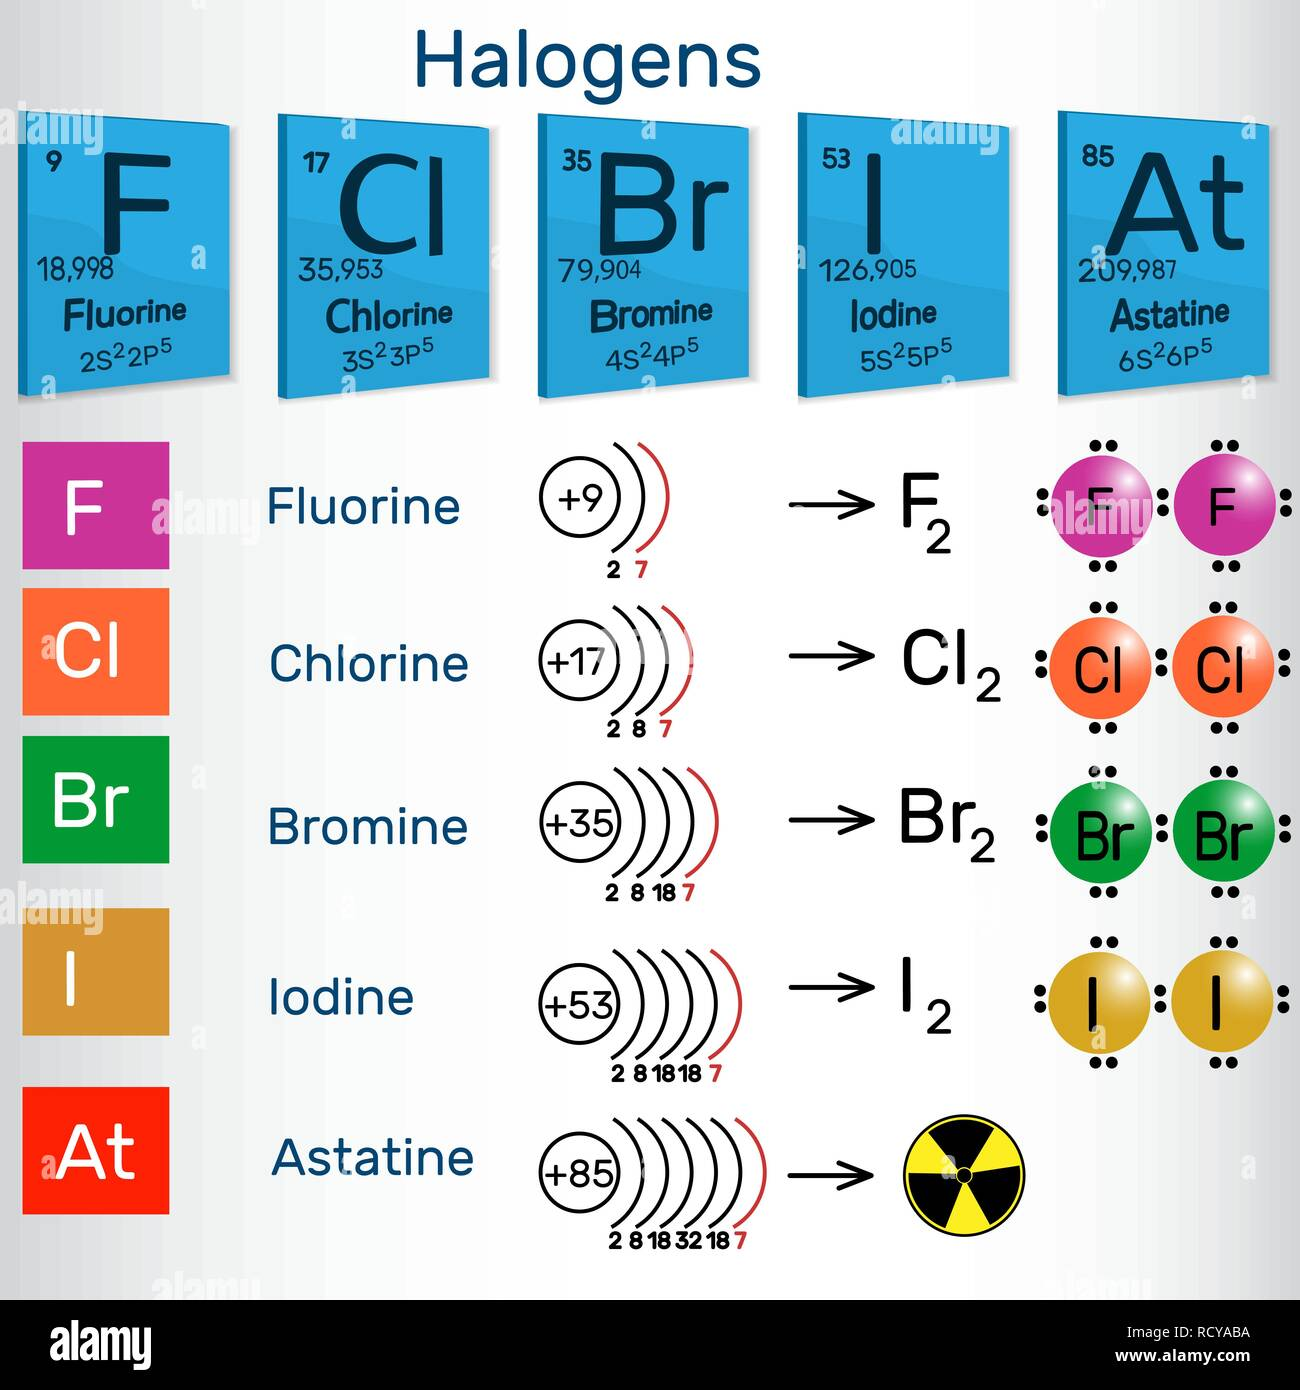 Halogens. Chemical elements of Periodic table. Vector illustration - Stock Image